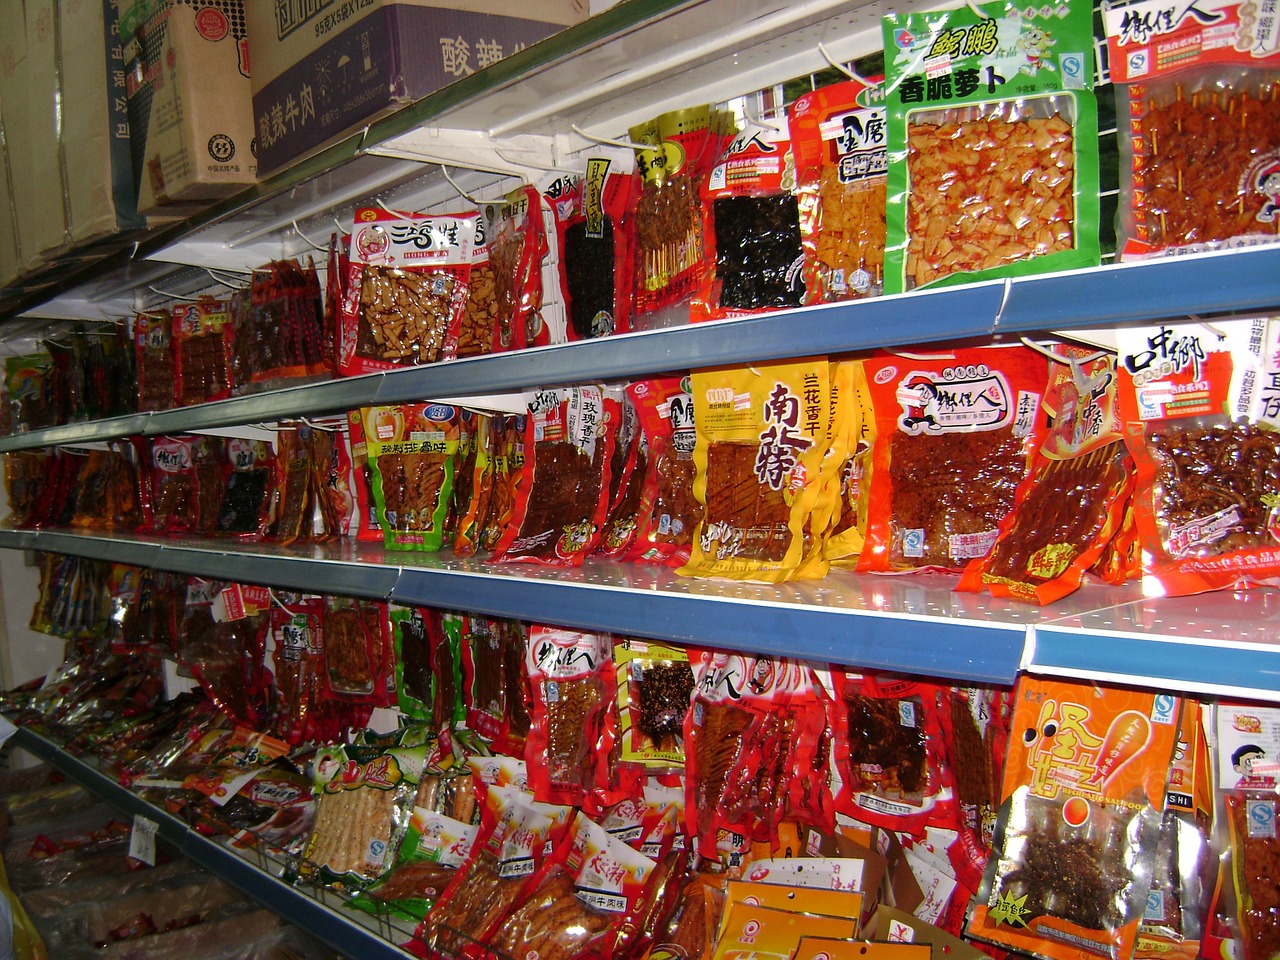 Image of grocery store shelves in China